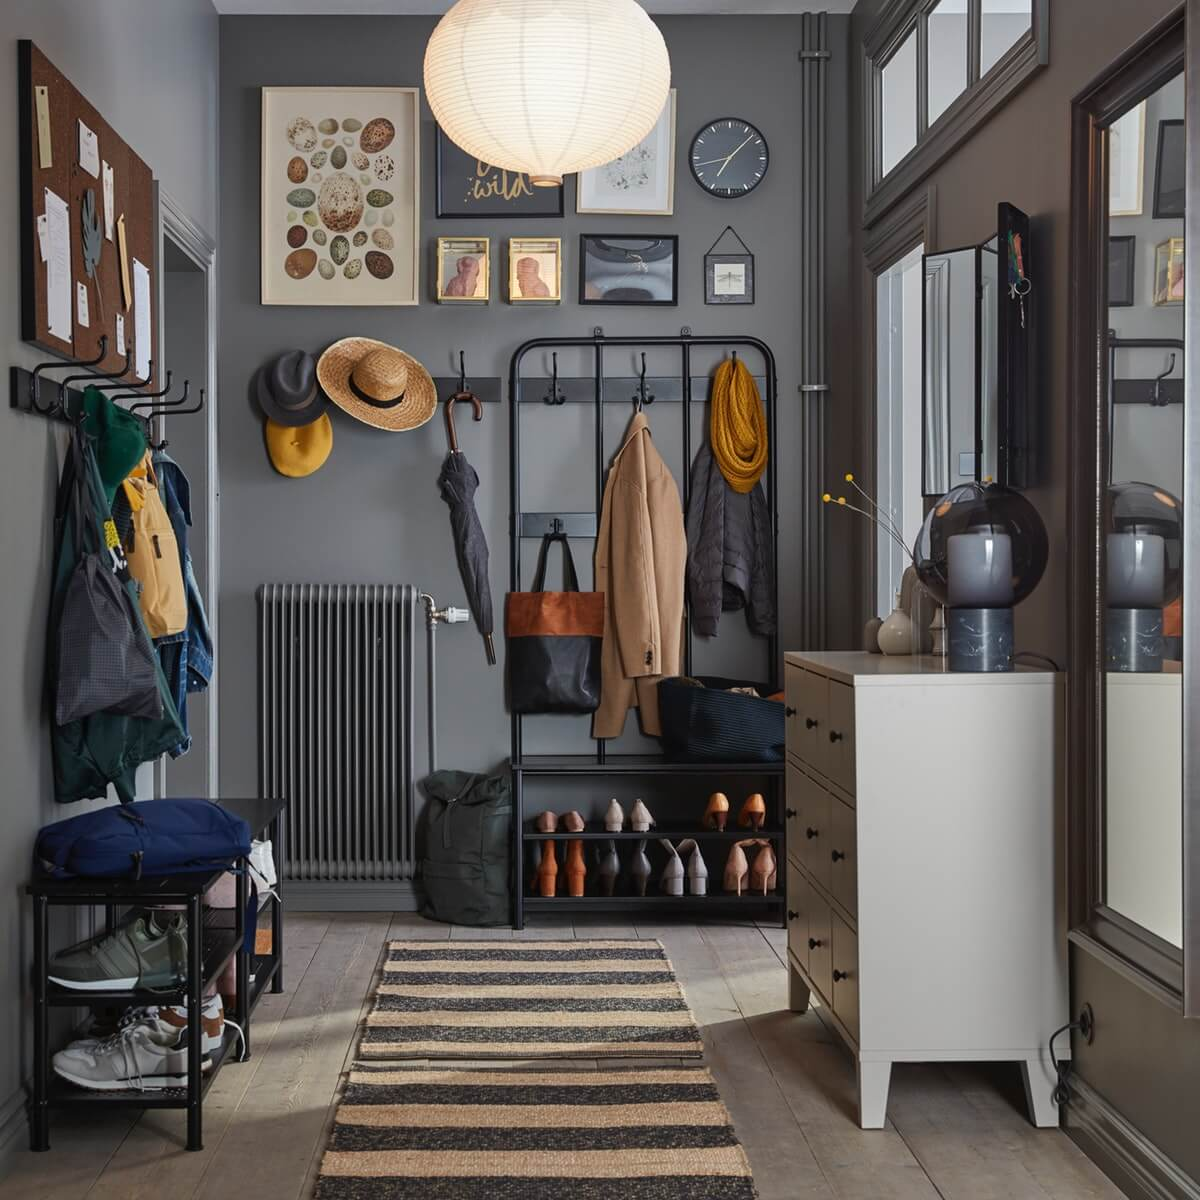 PINNIG coat rack at the entrance of the hallway with ample storage, zones for activities and people.